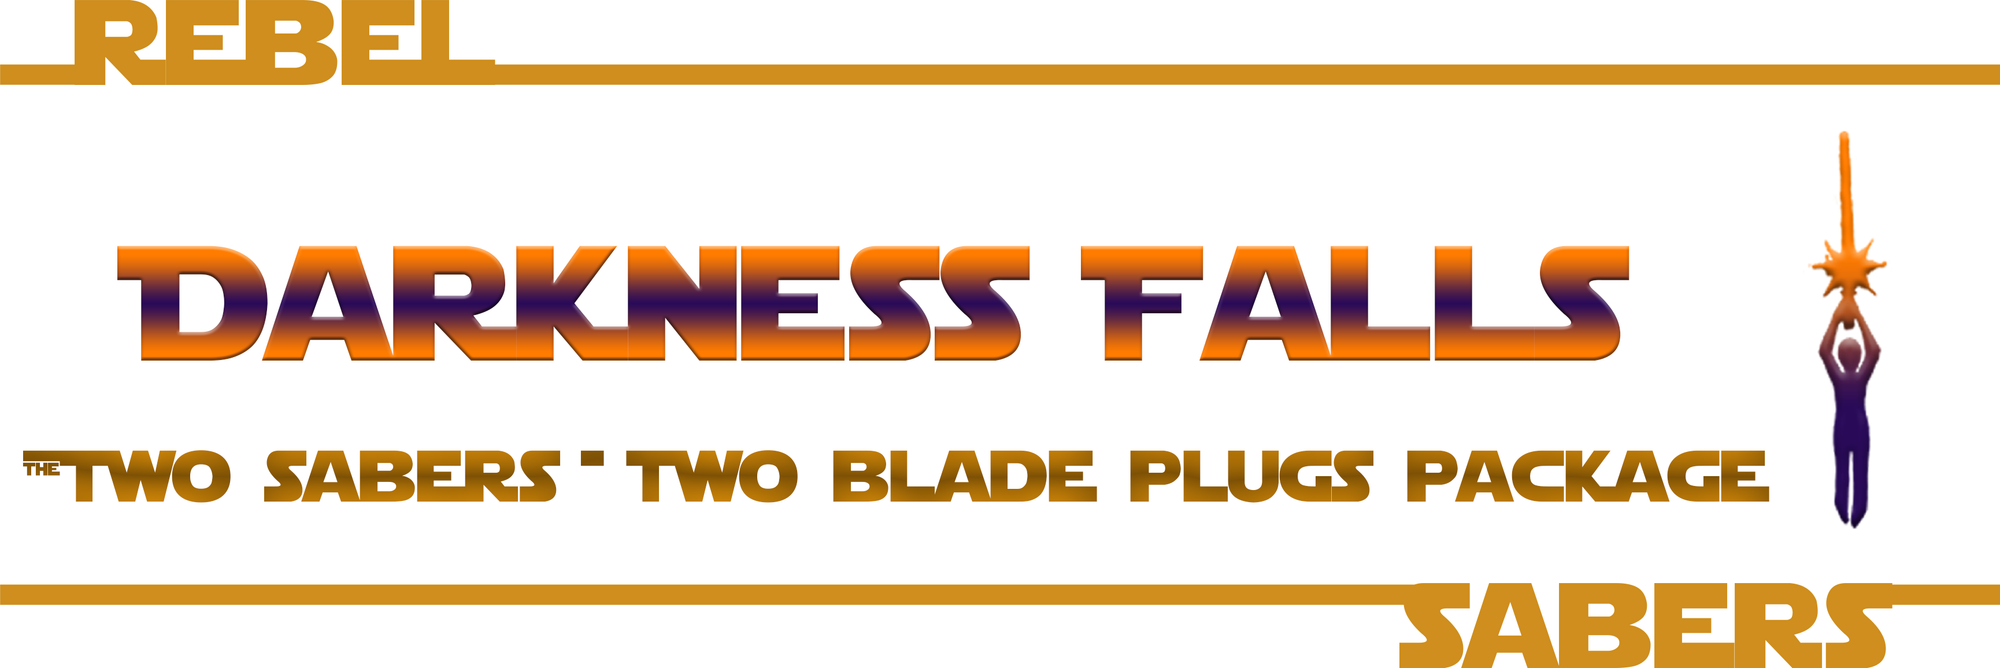 Darkness Falls | 2 Saber & 2 Blade Plugs Package